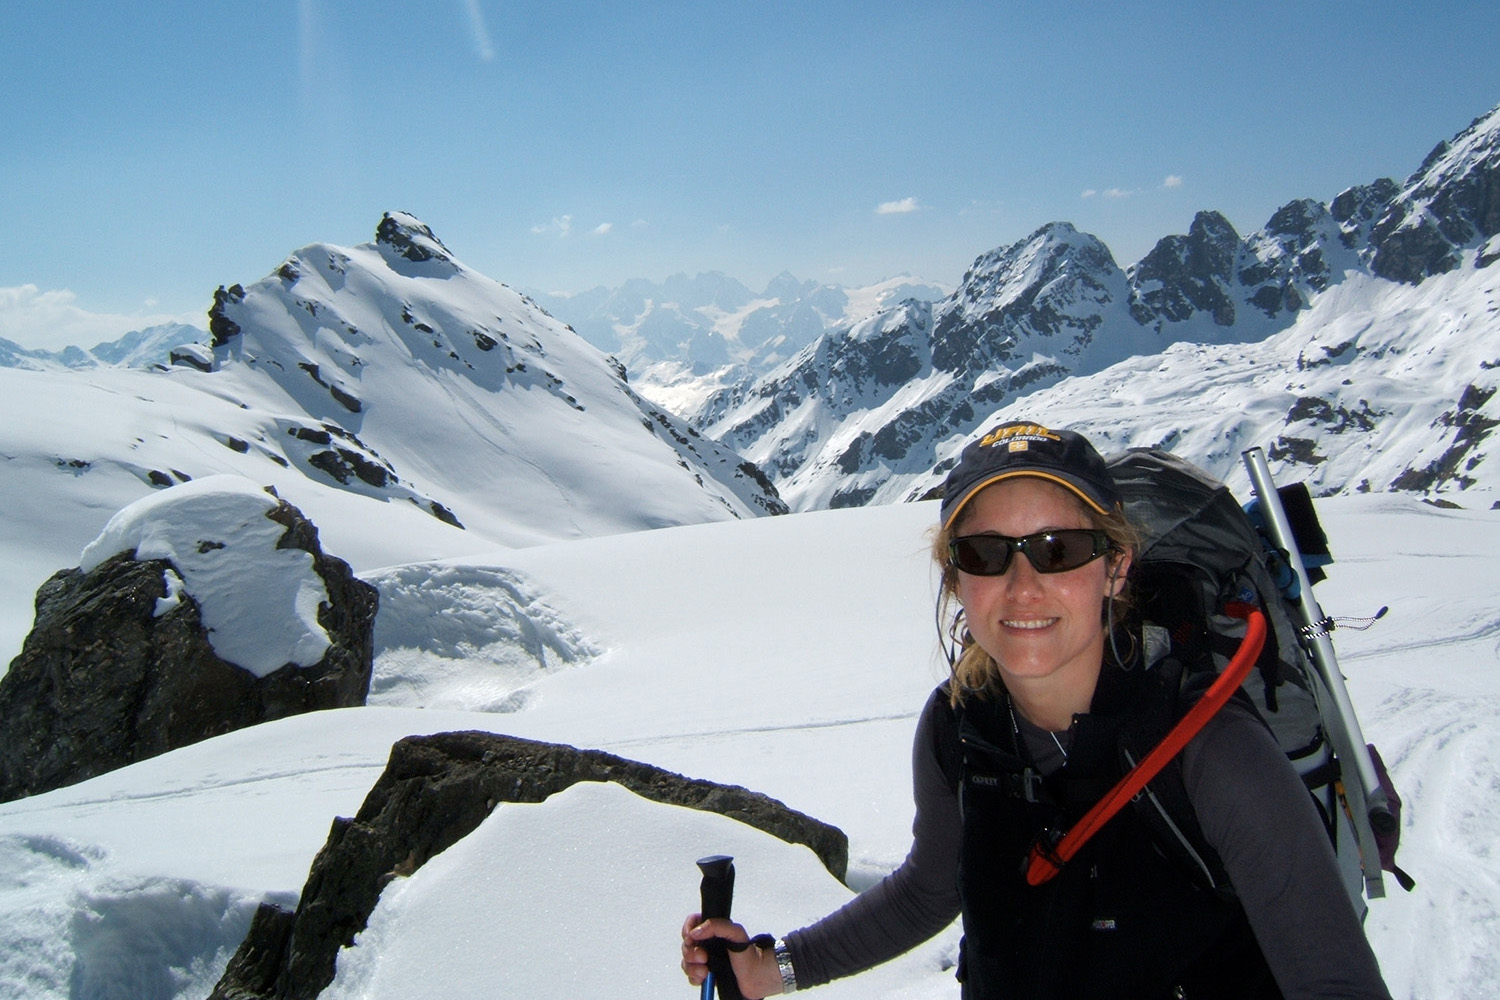 Total Heliski CEO Hayley exploring the back country, which is close to our hearts.